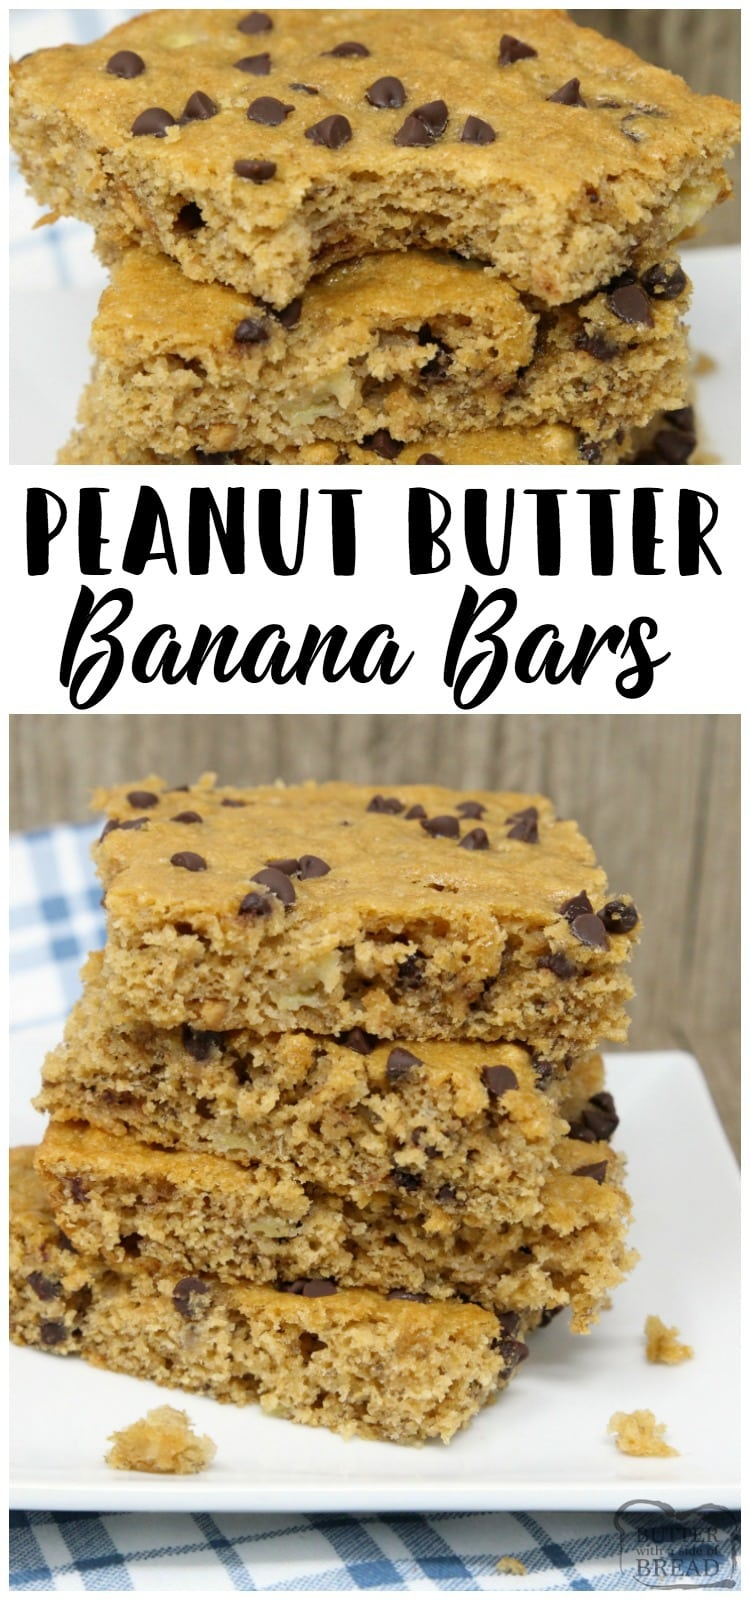 Peanut Butter Banana Bars are packed with bananas, whole wheat flour, peanut butter and chocolate chips. Perfectly sweet, filling & satisfying snack!